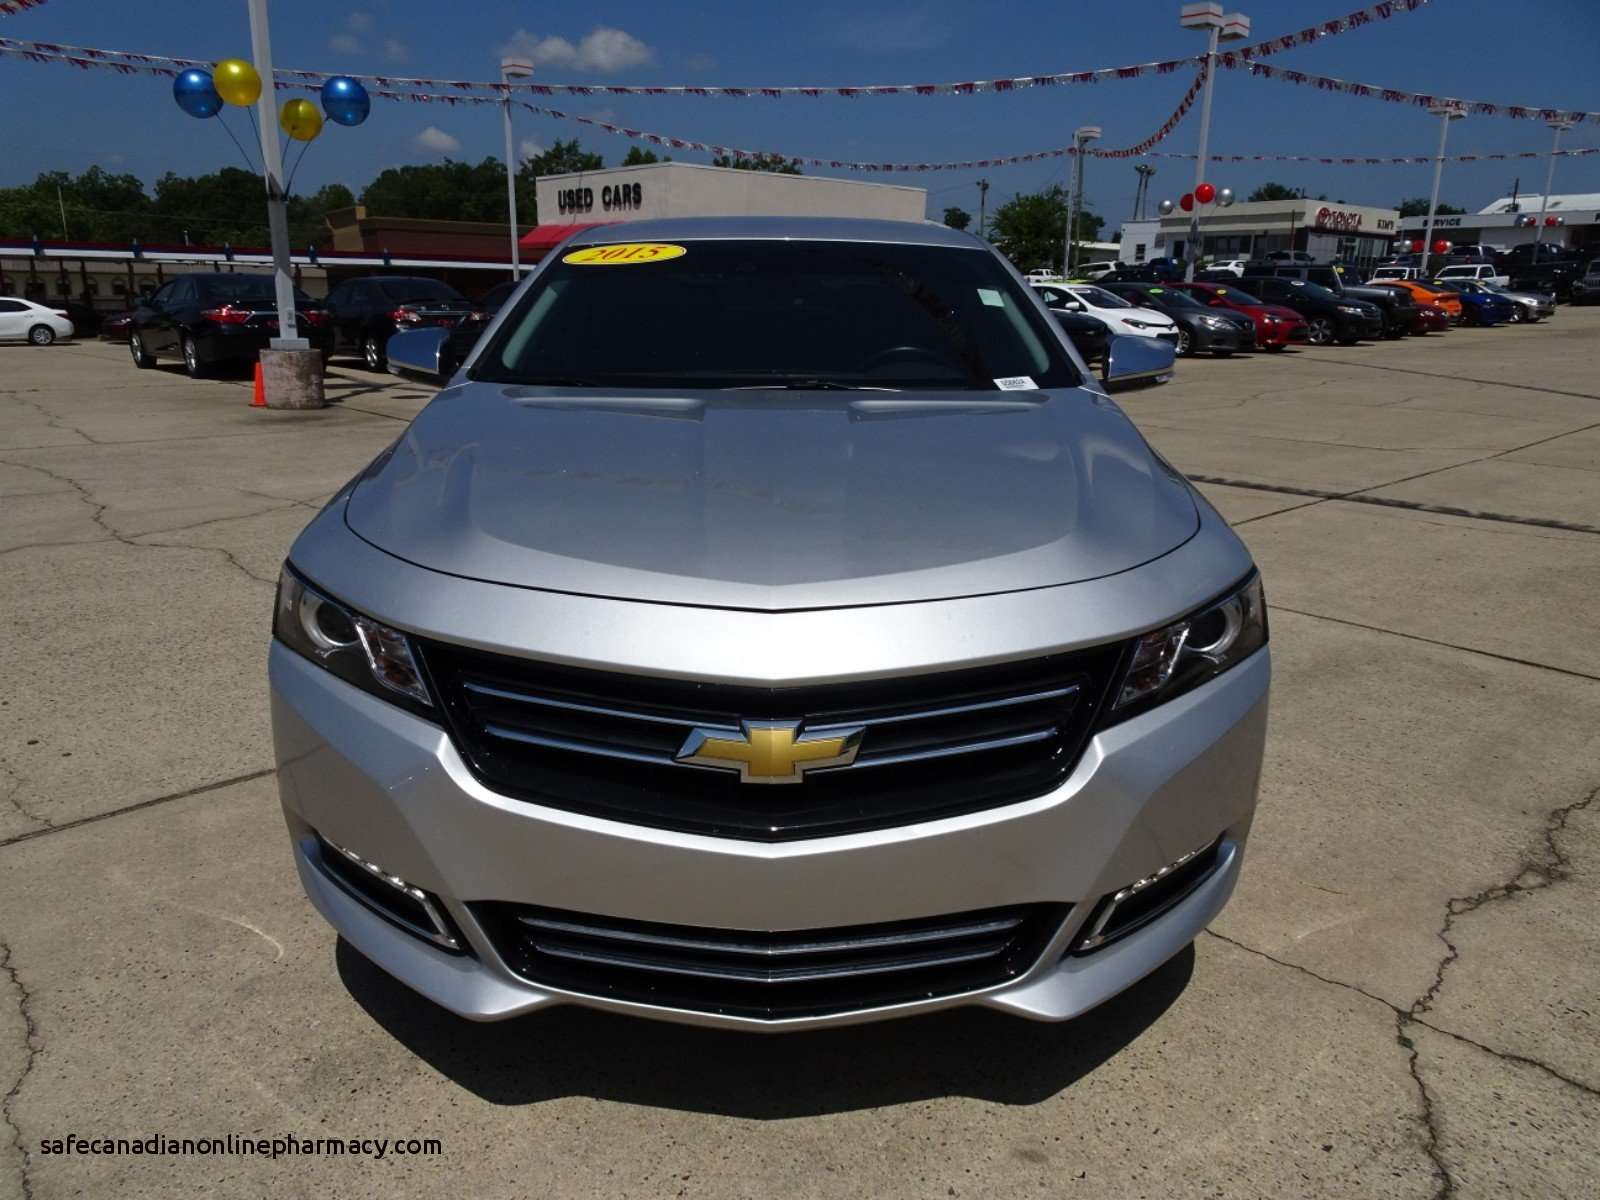 Cars for Sale Near Me Under 3000 Inspirational Chevrolet Impala Under 3000